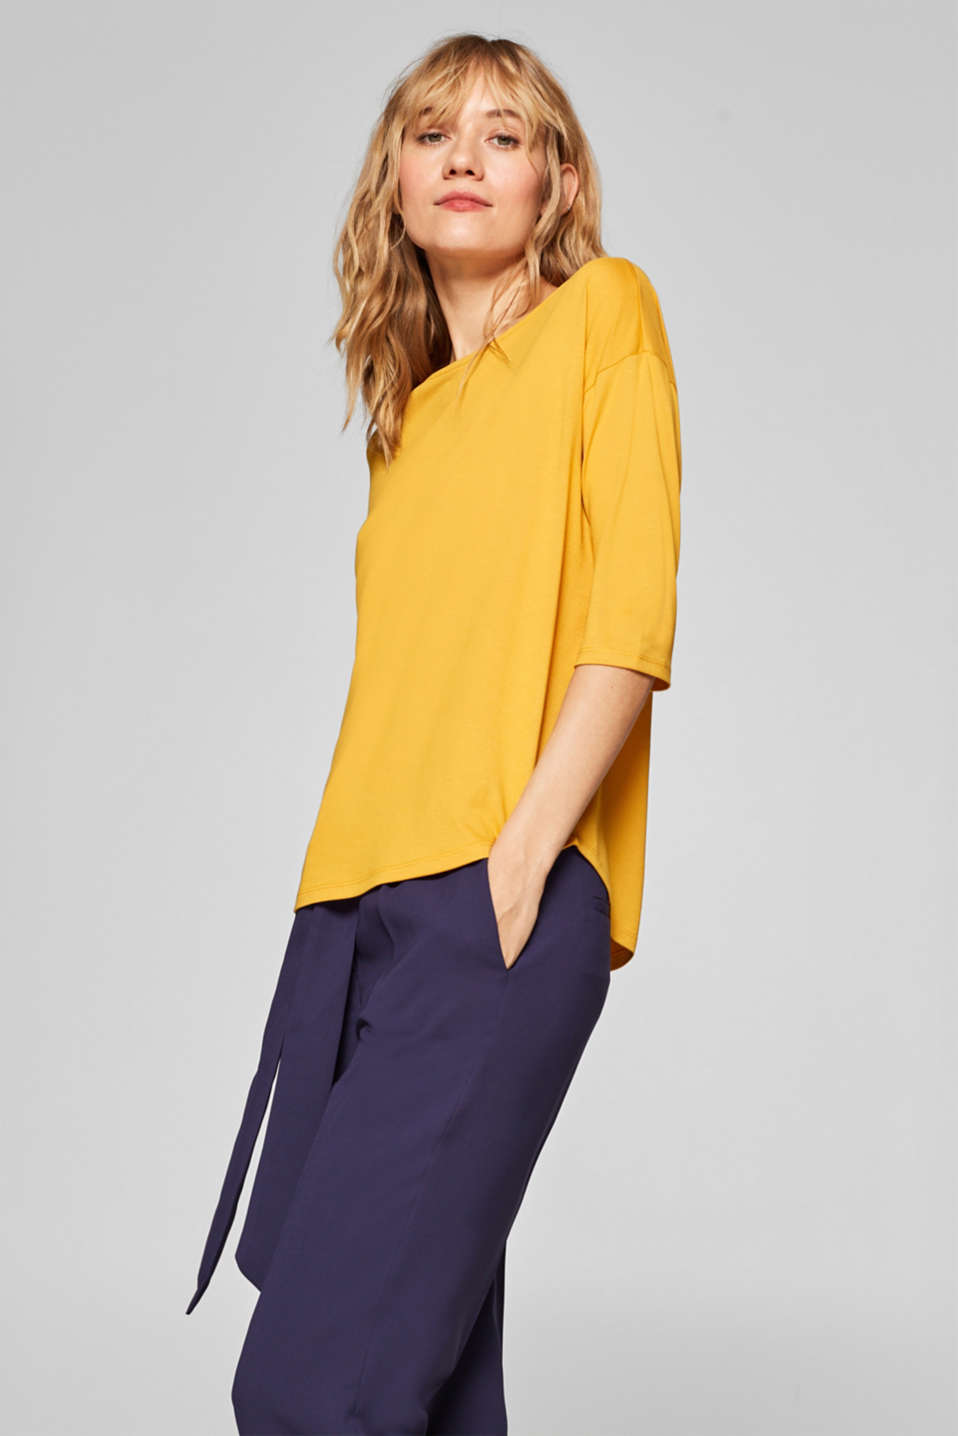 Esprit - Top with fashionable three-quarter length sleeves